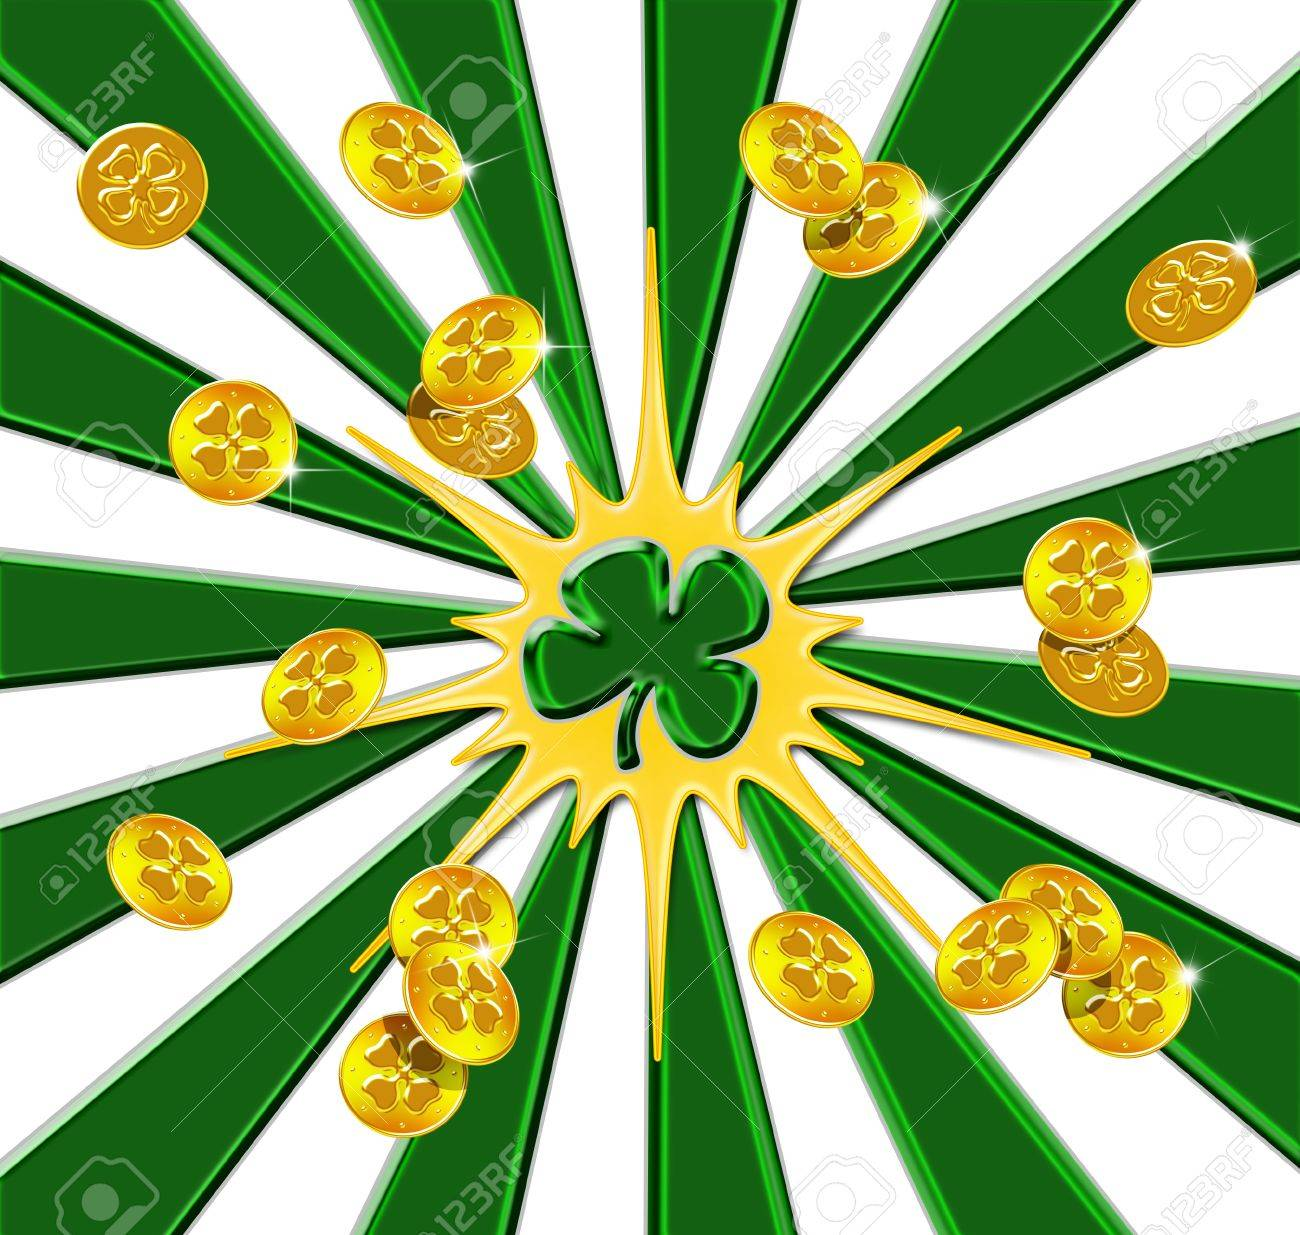 Gold coins from a pot of gold scattering outward from a shamrock Stock Photo - 8713307